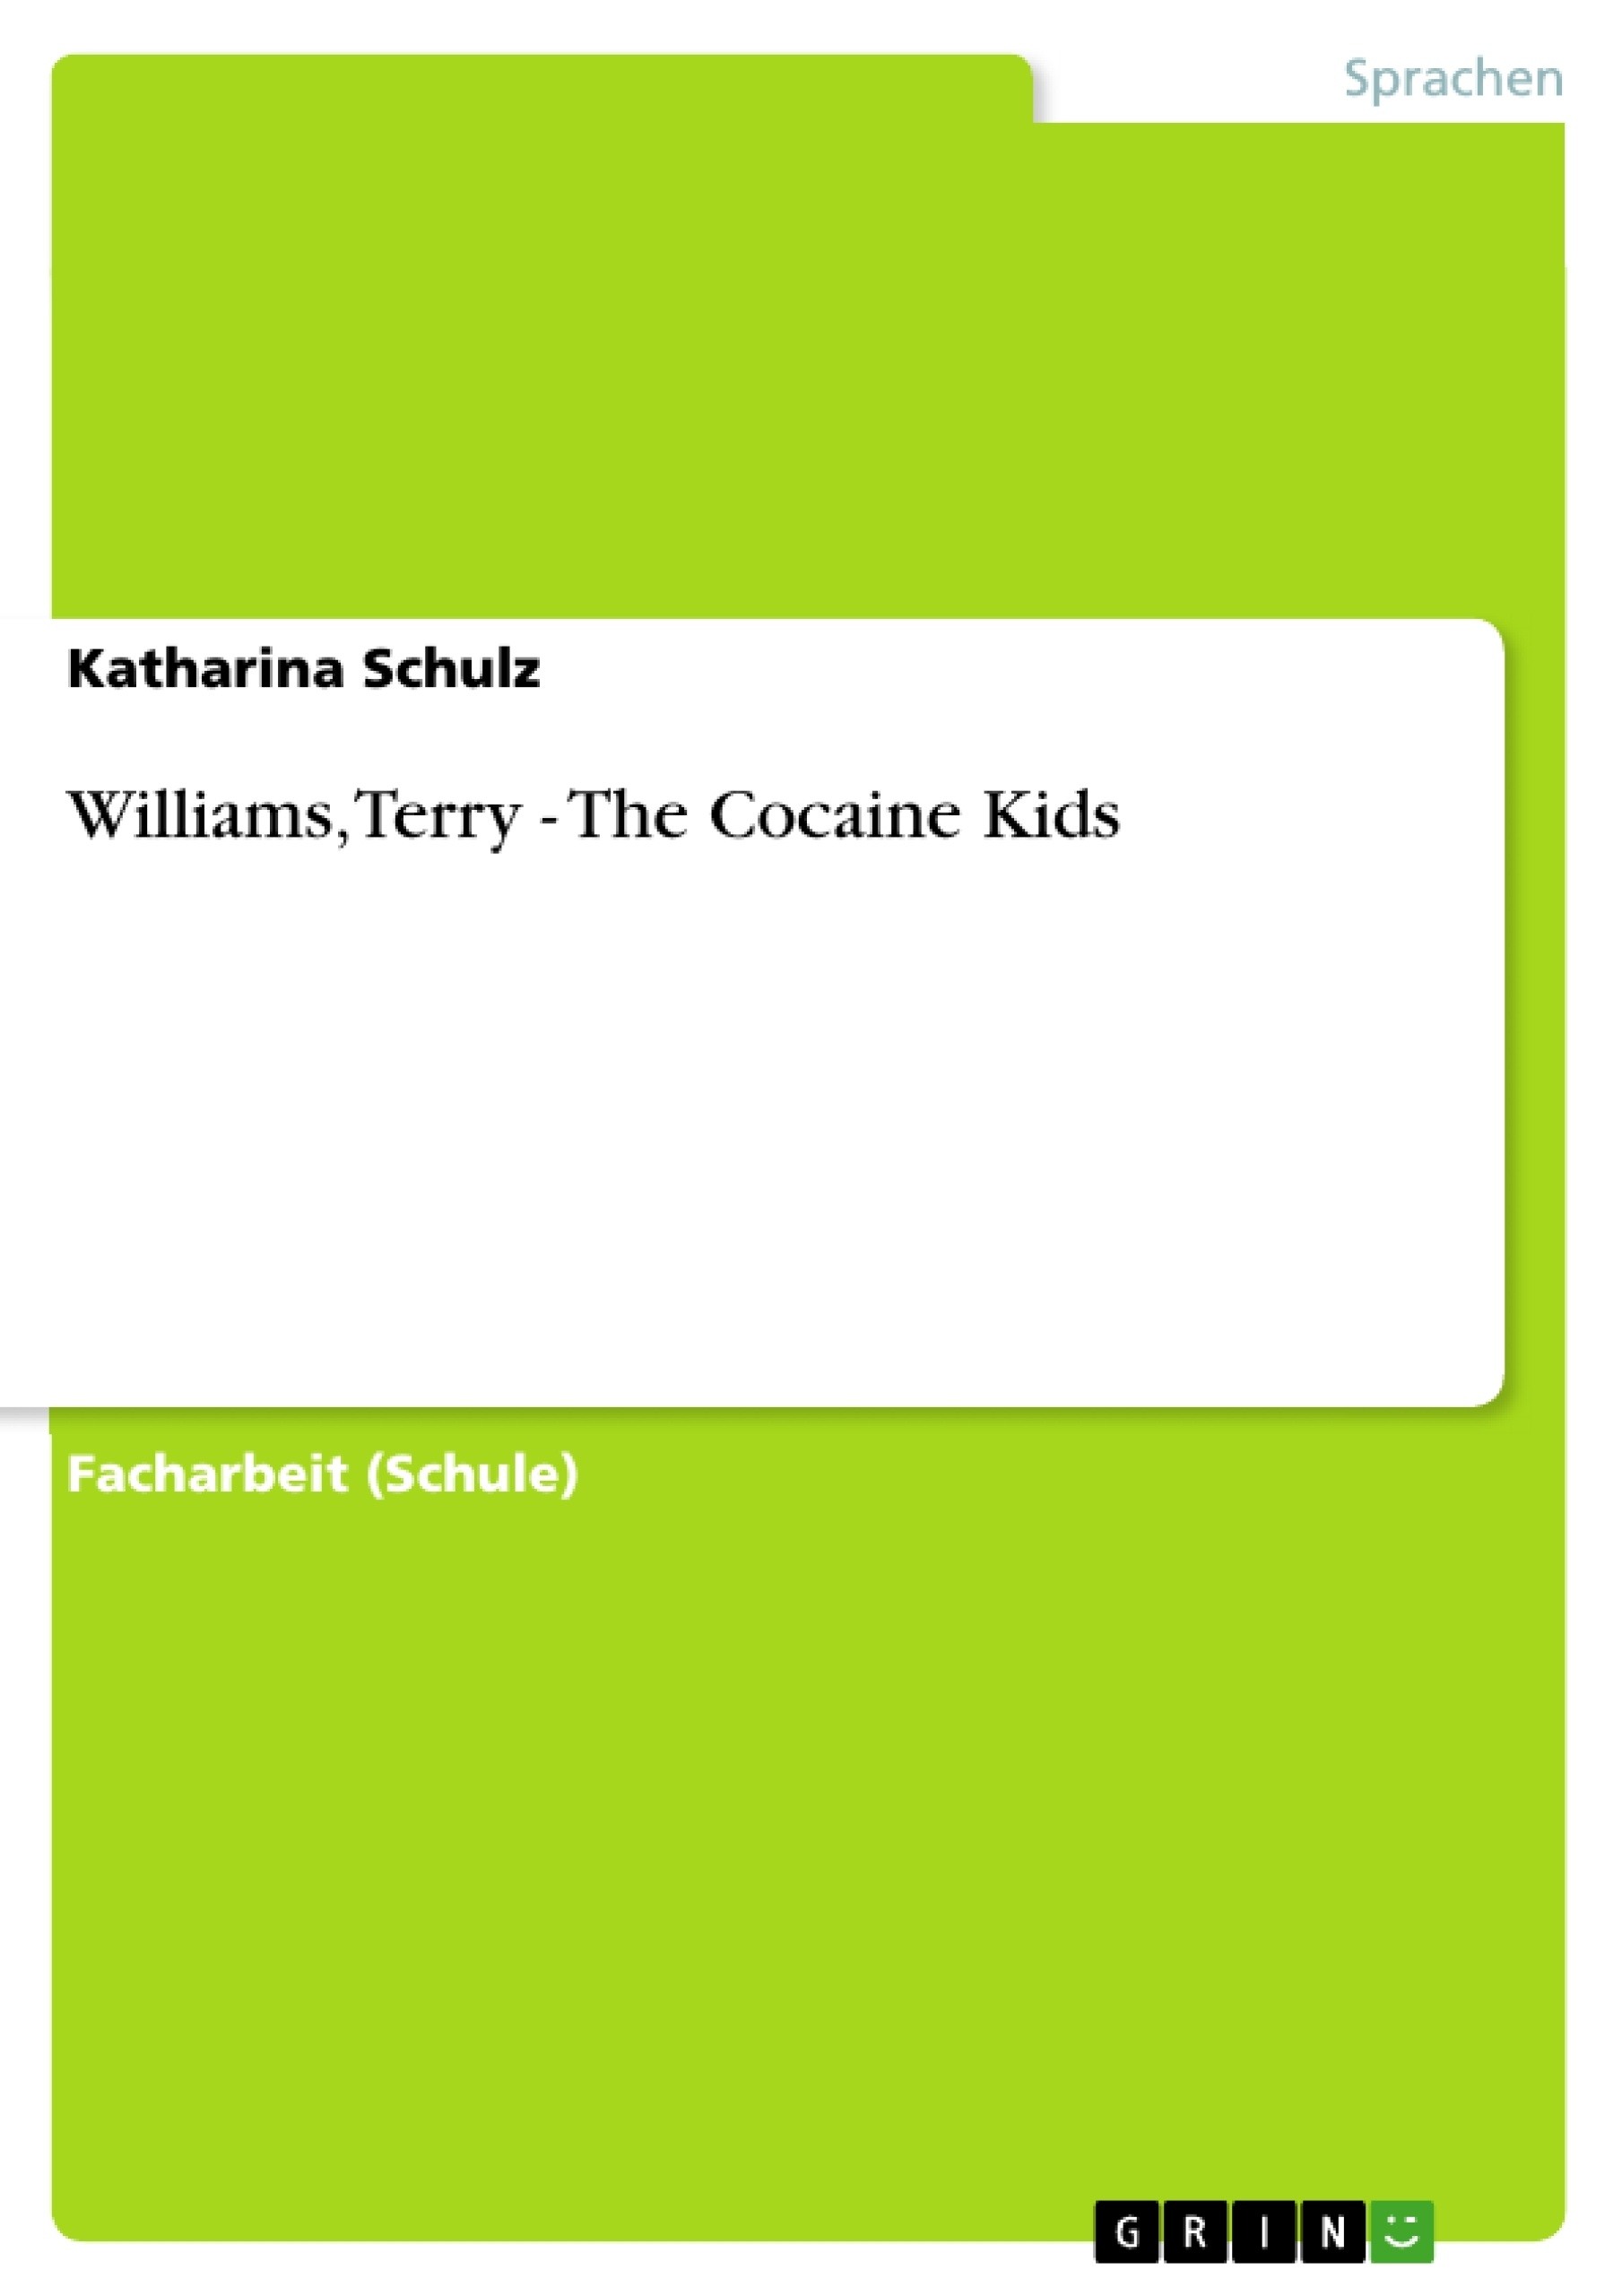 Williams, Terry - The Cocaine Kids | Masterarbeit, Hausarbeit ...